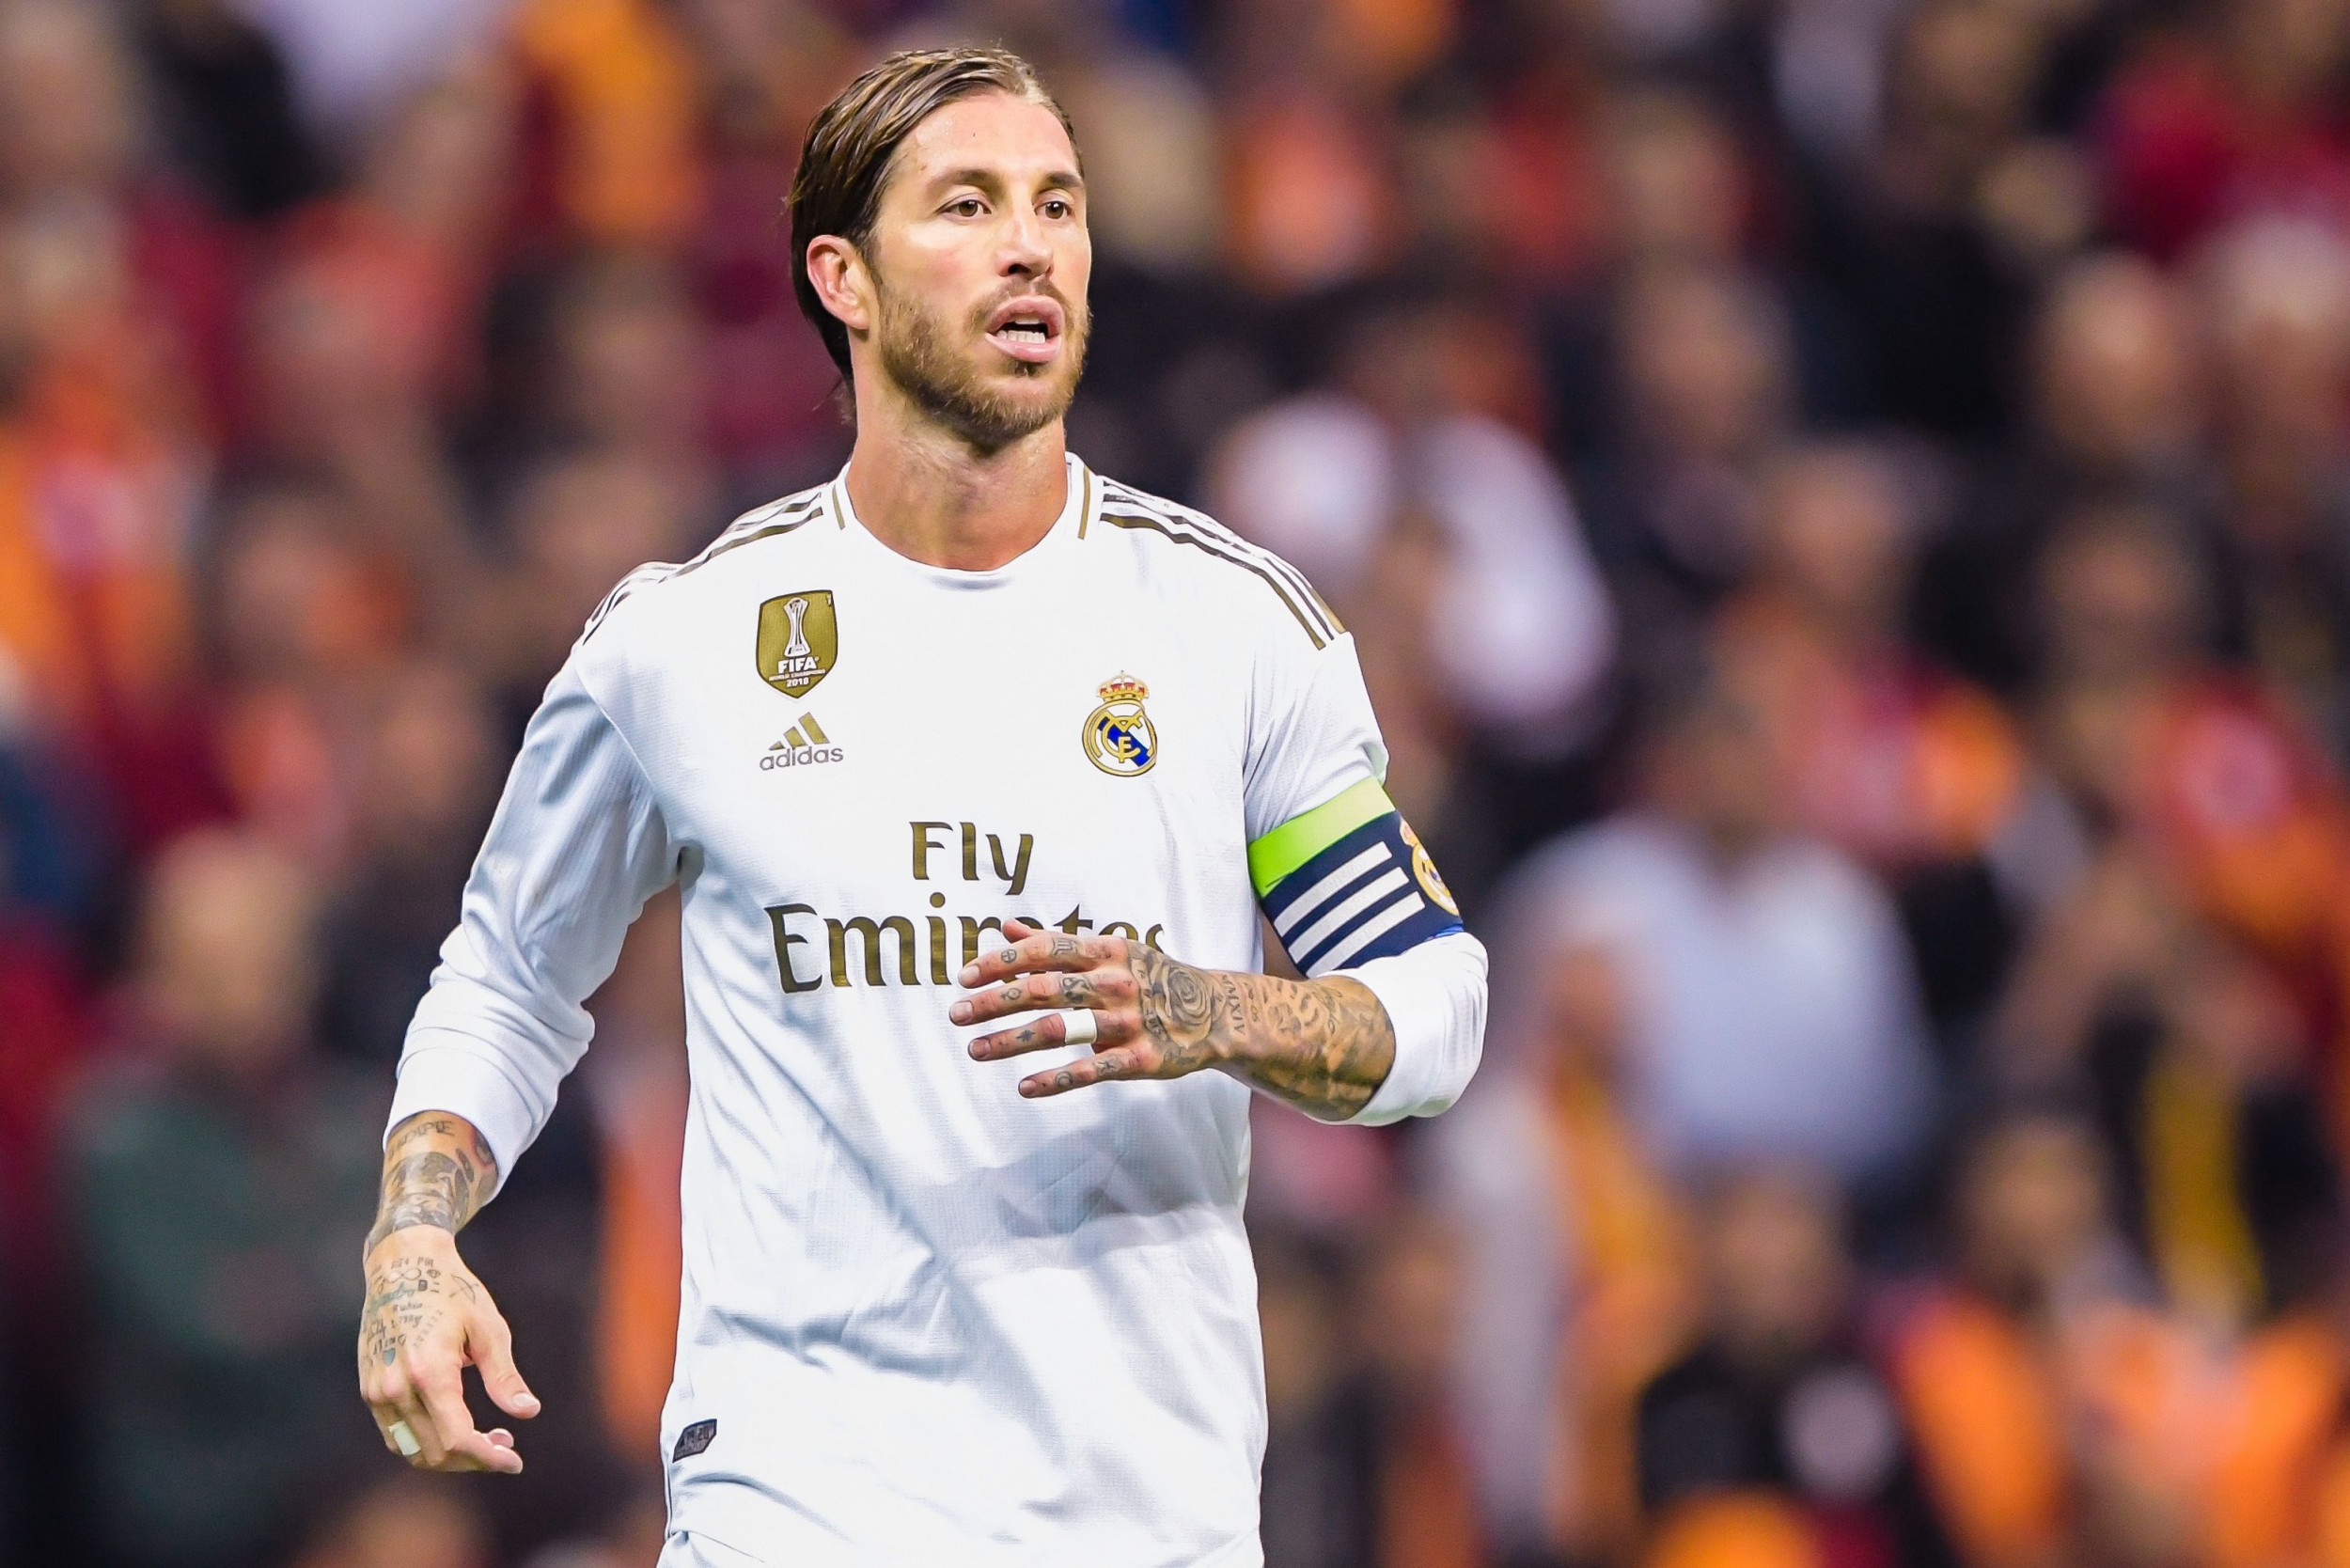 Real Madrid vs. Leganes: Where to Watch La Liga, Tv Channel, Live Stream, Team News and Odds